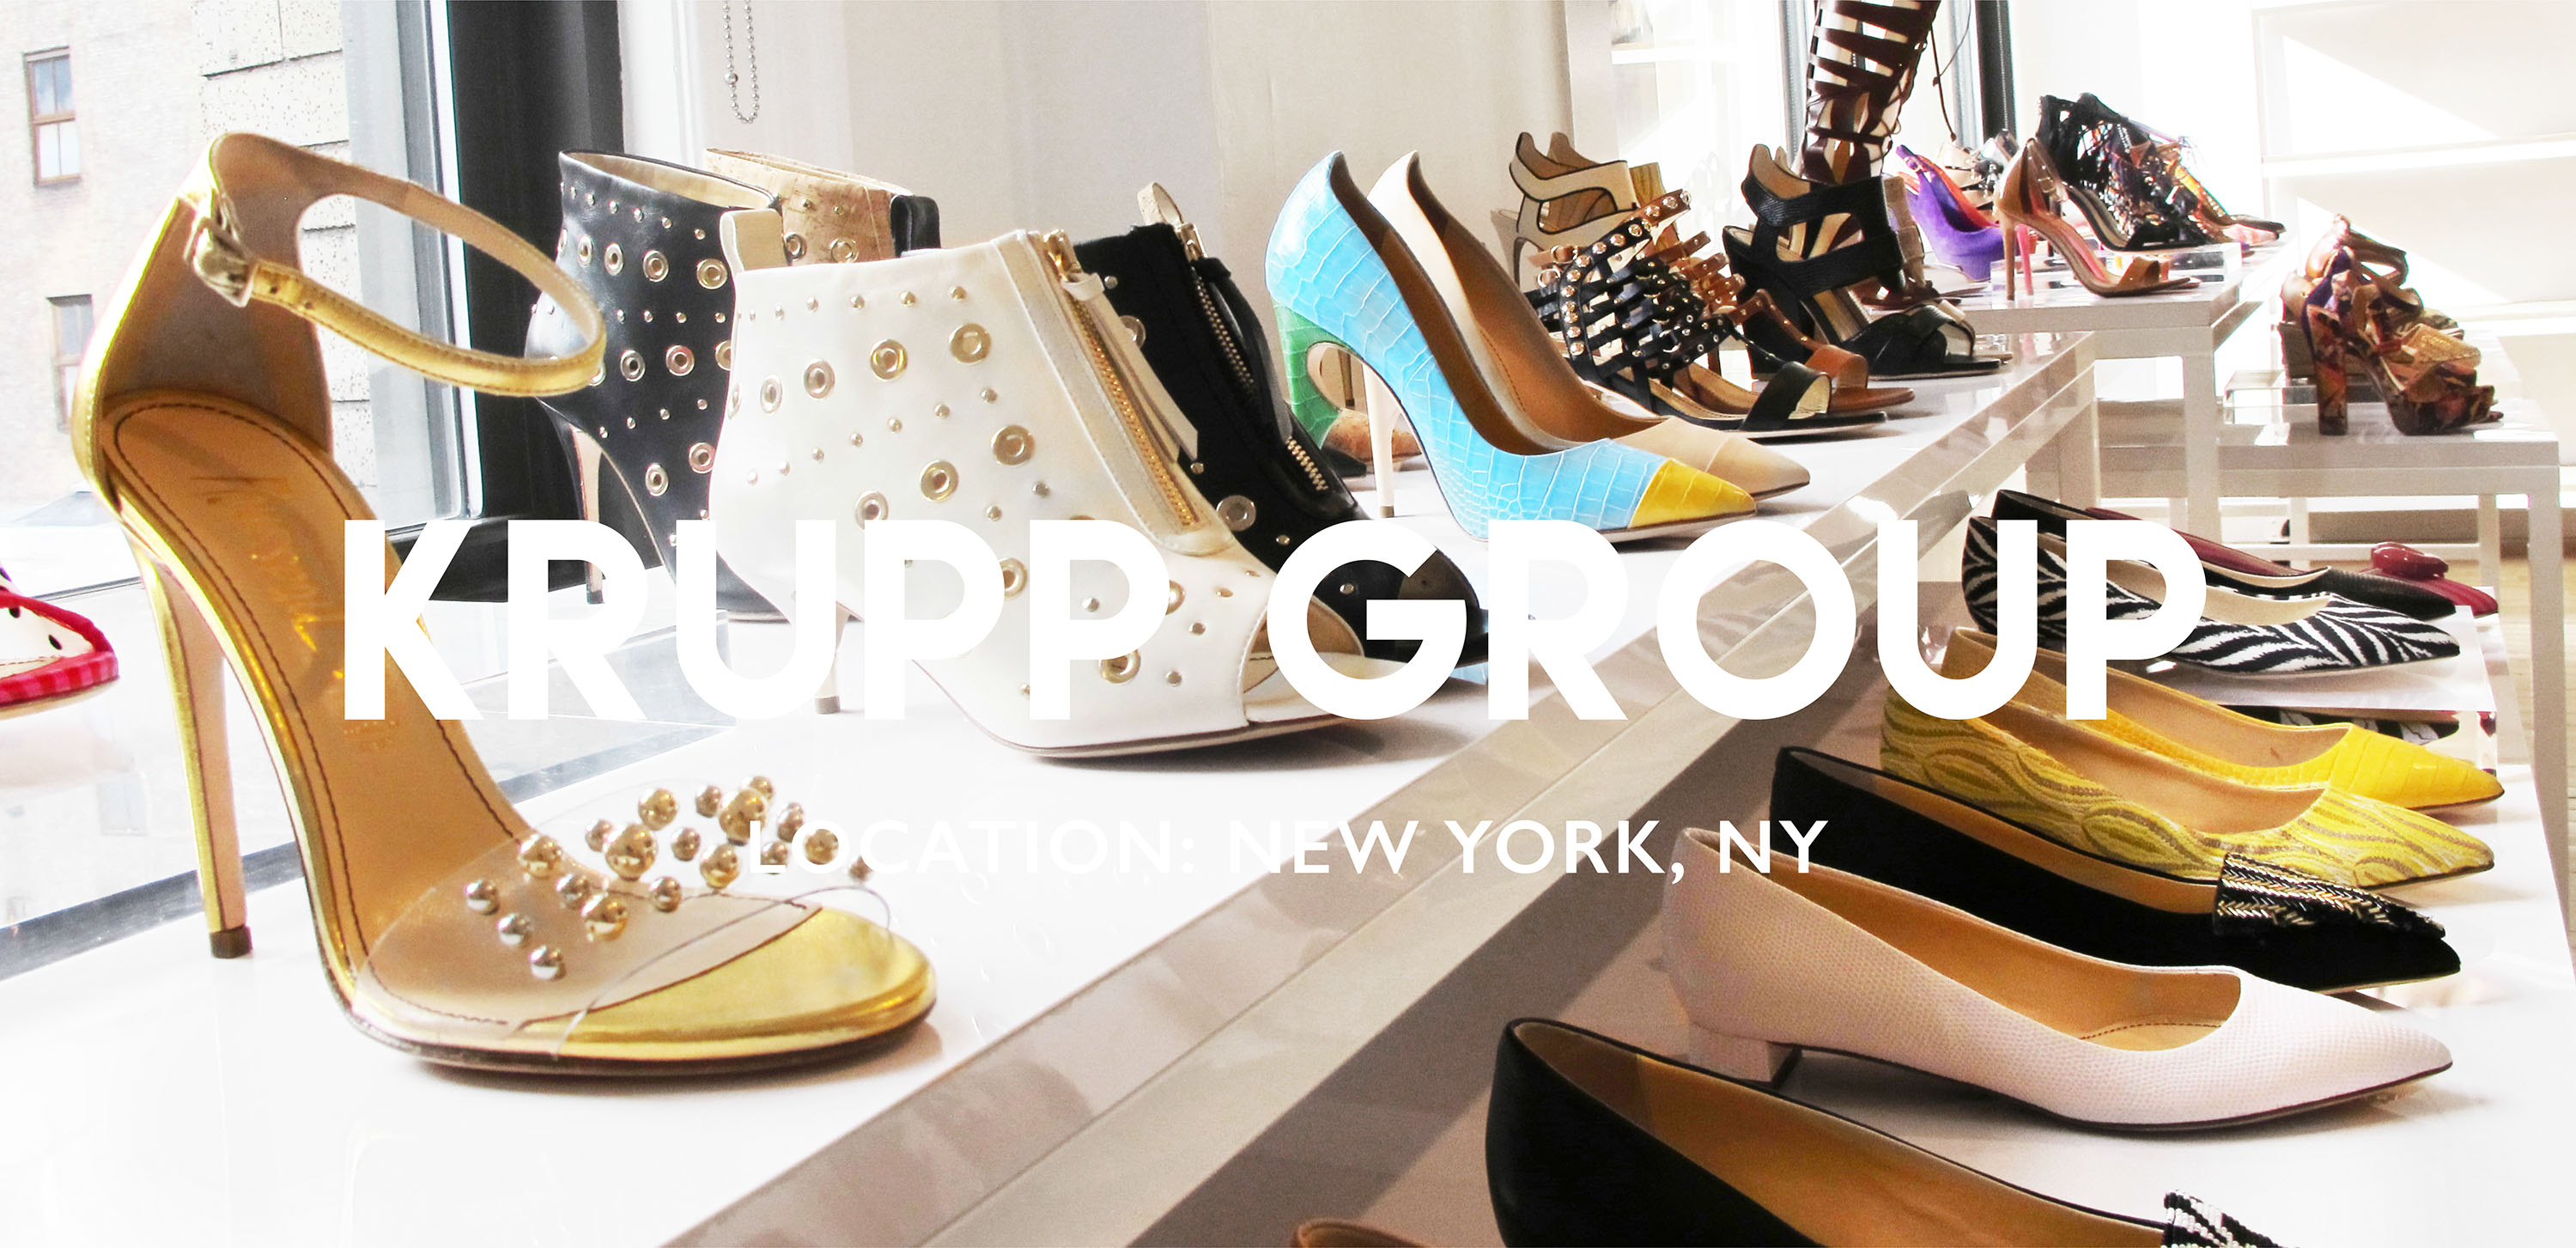 Interior Design and Visual Merchandising for Krupp Group in New York, NY | Gala Magriña Design